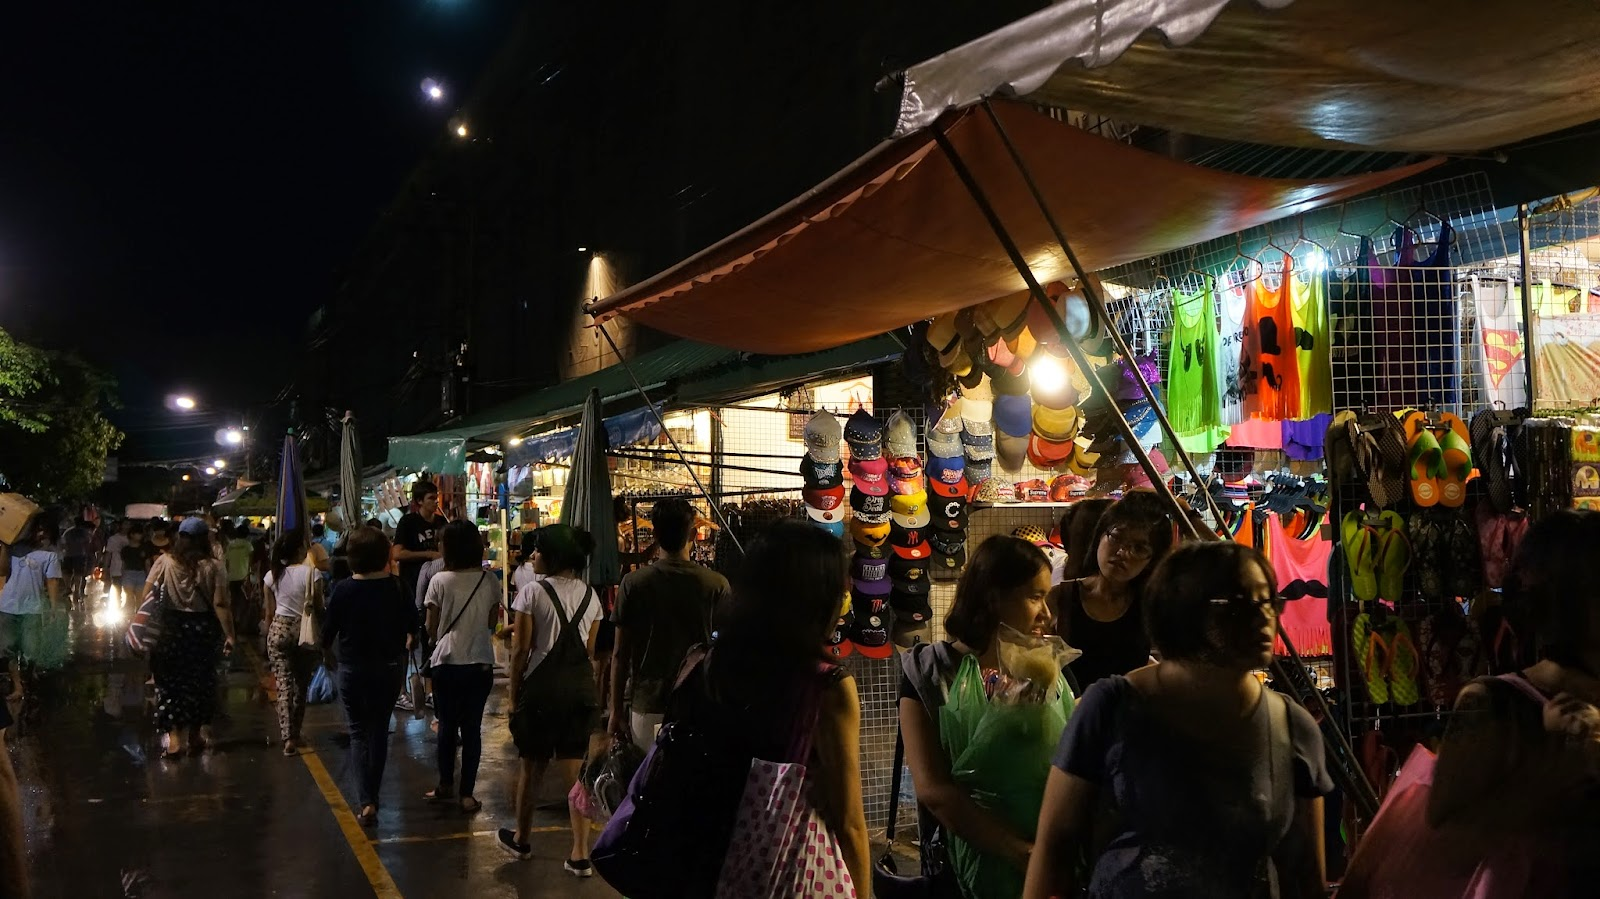 Chatuchak market was already closed by the time we were there, but the night market is still equally as interesting